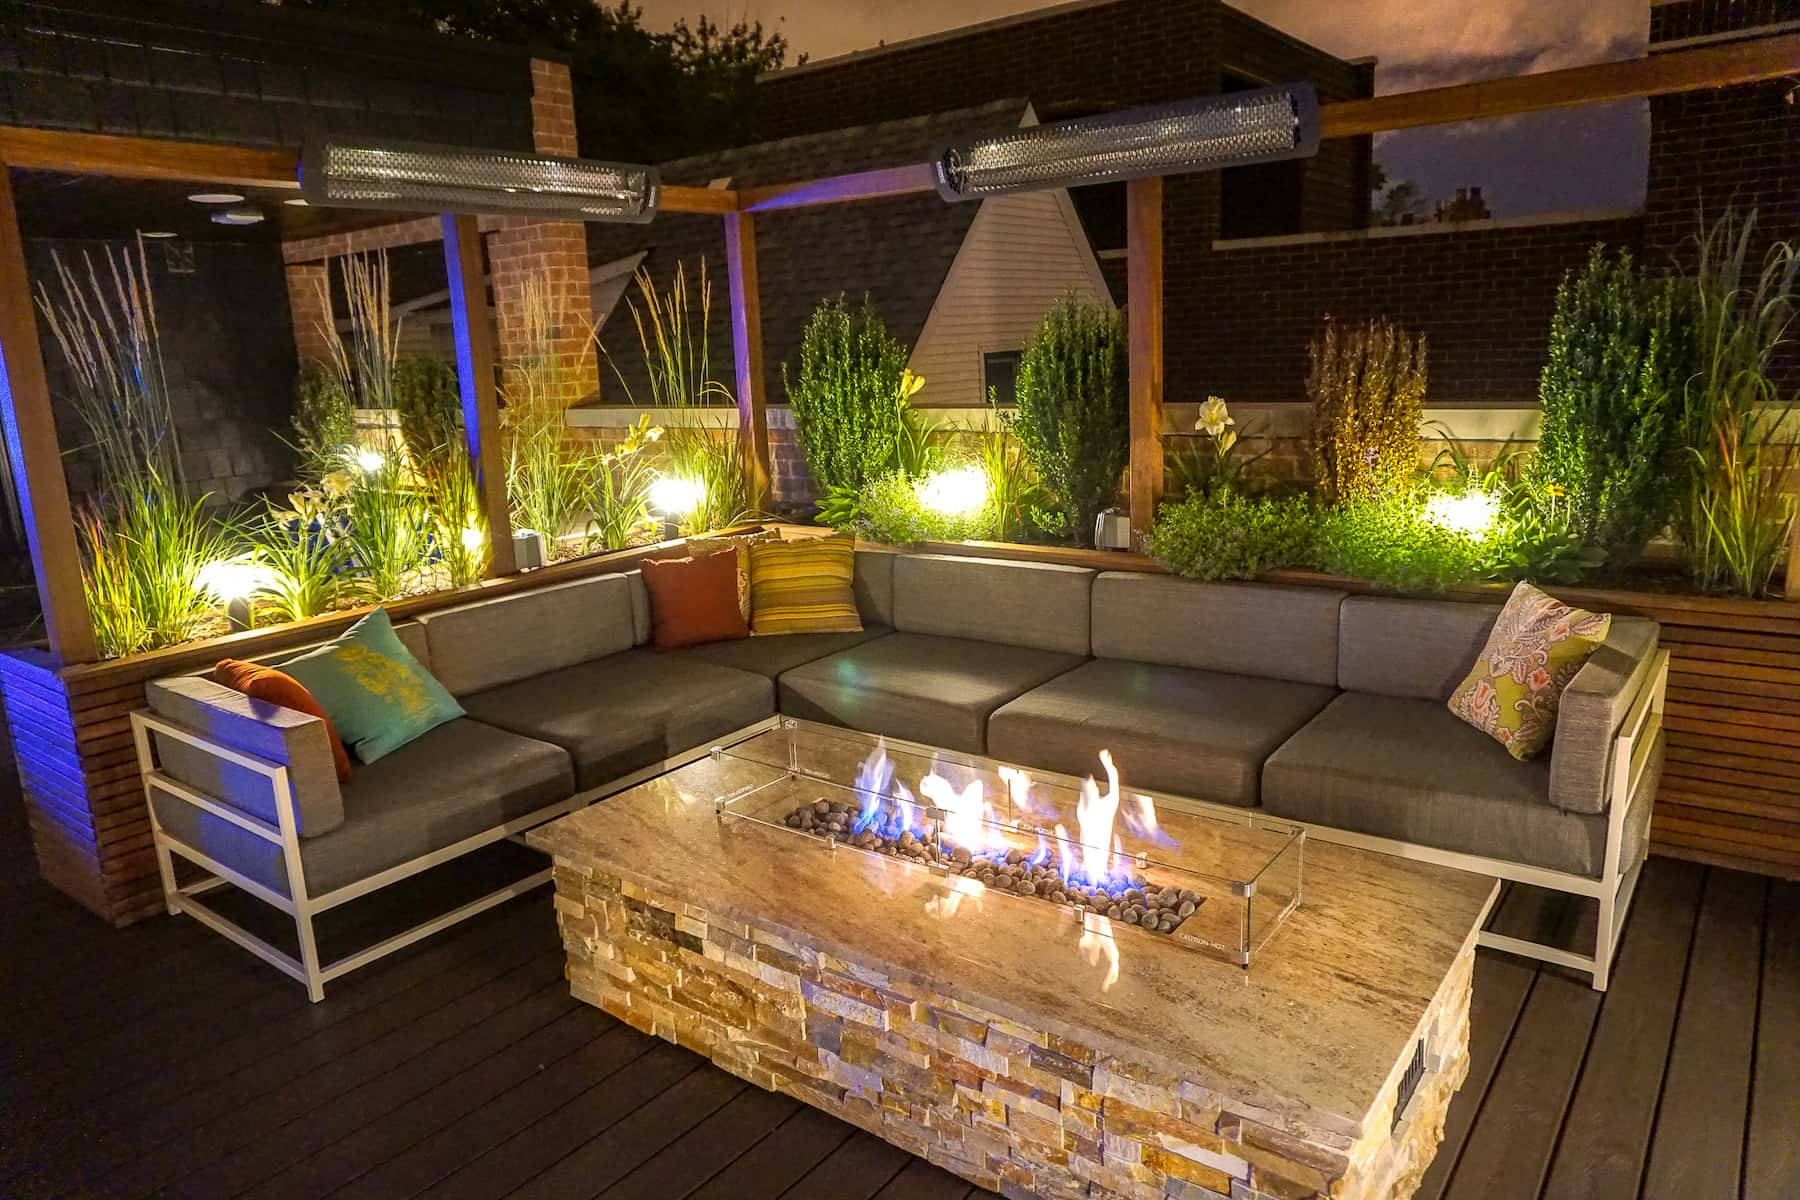 Outdoor Lighting with Built-In Planters